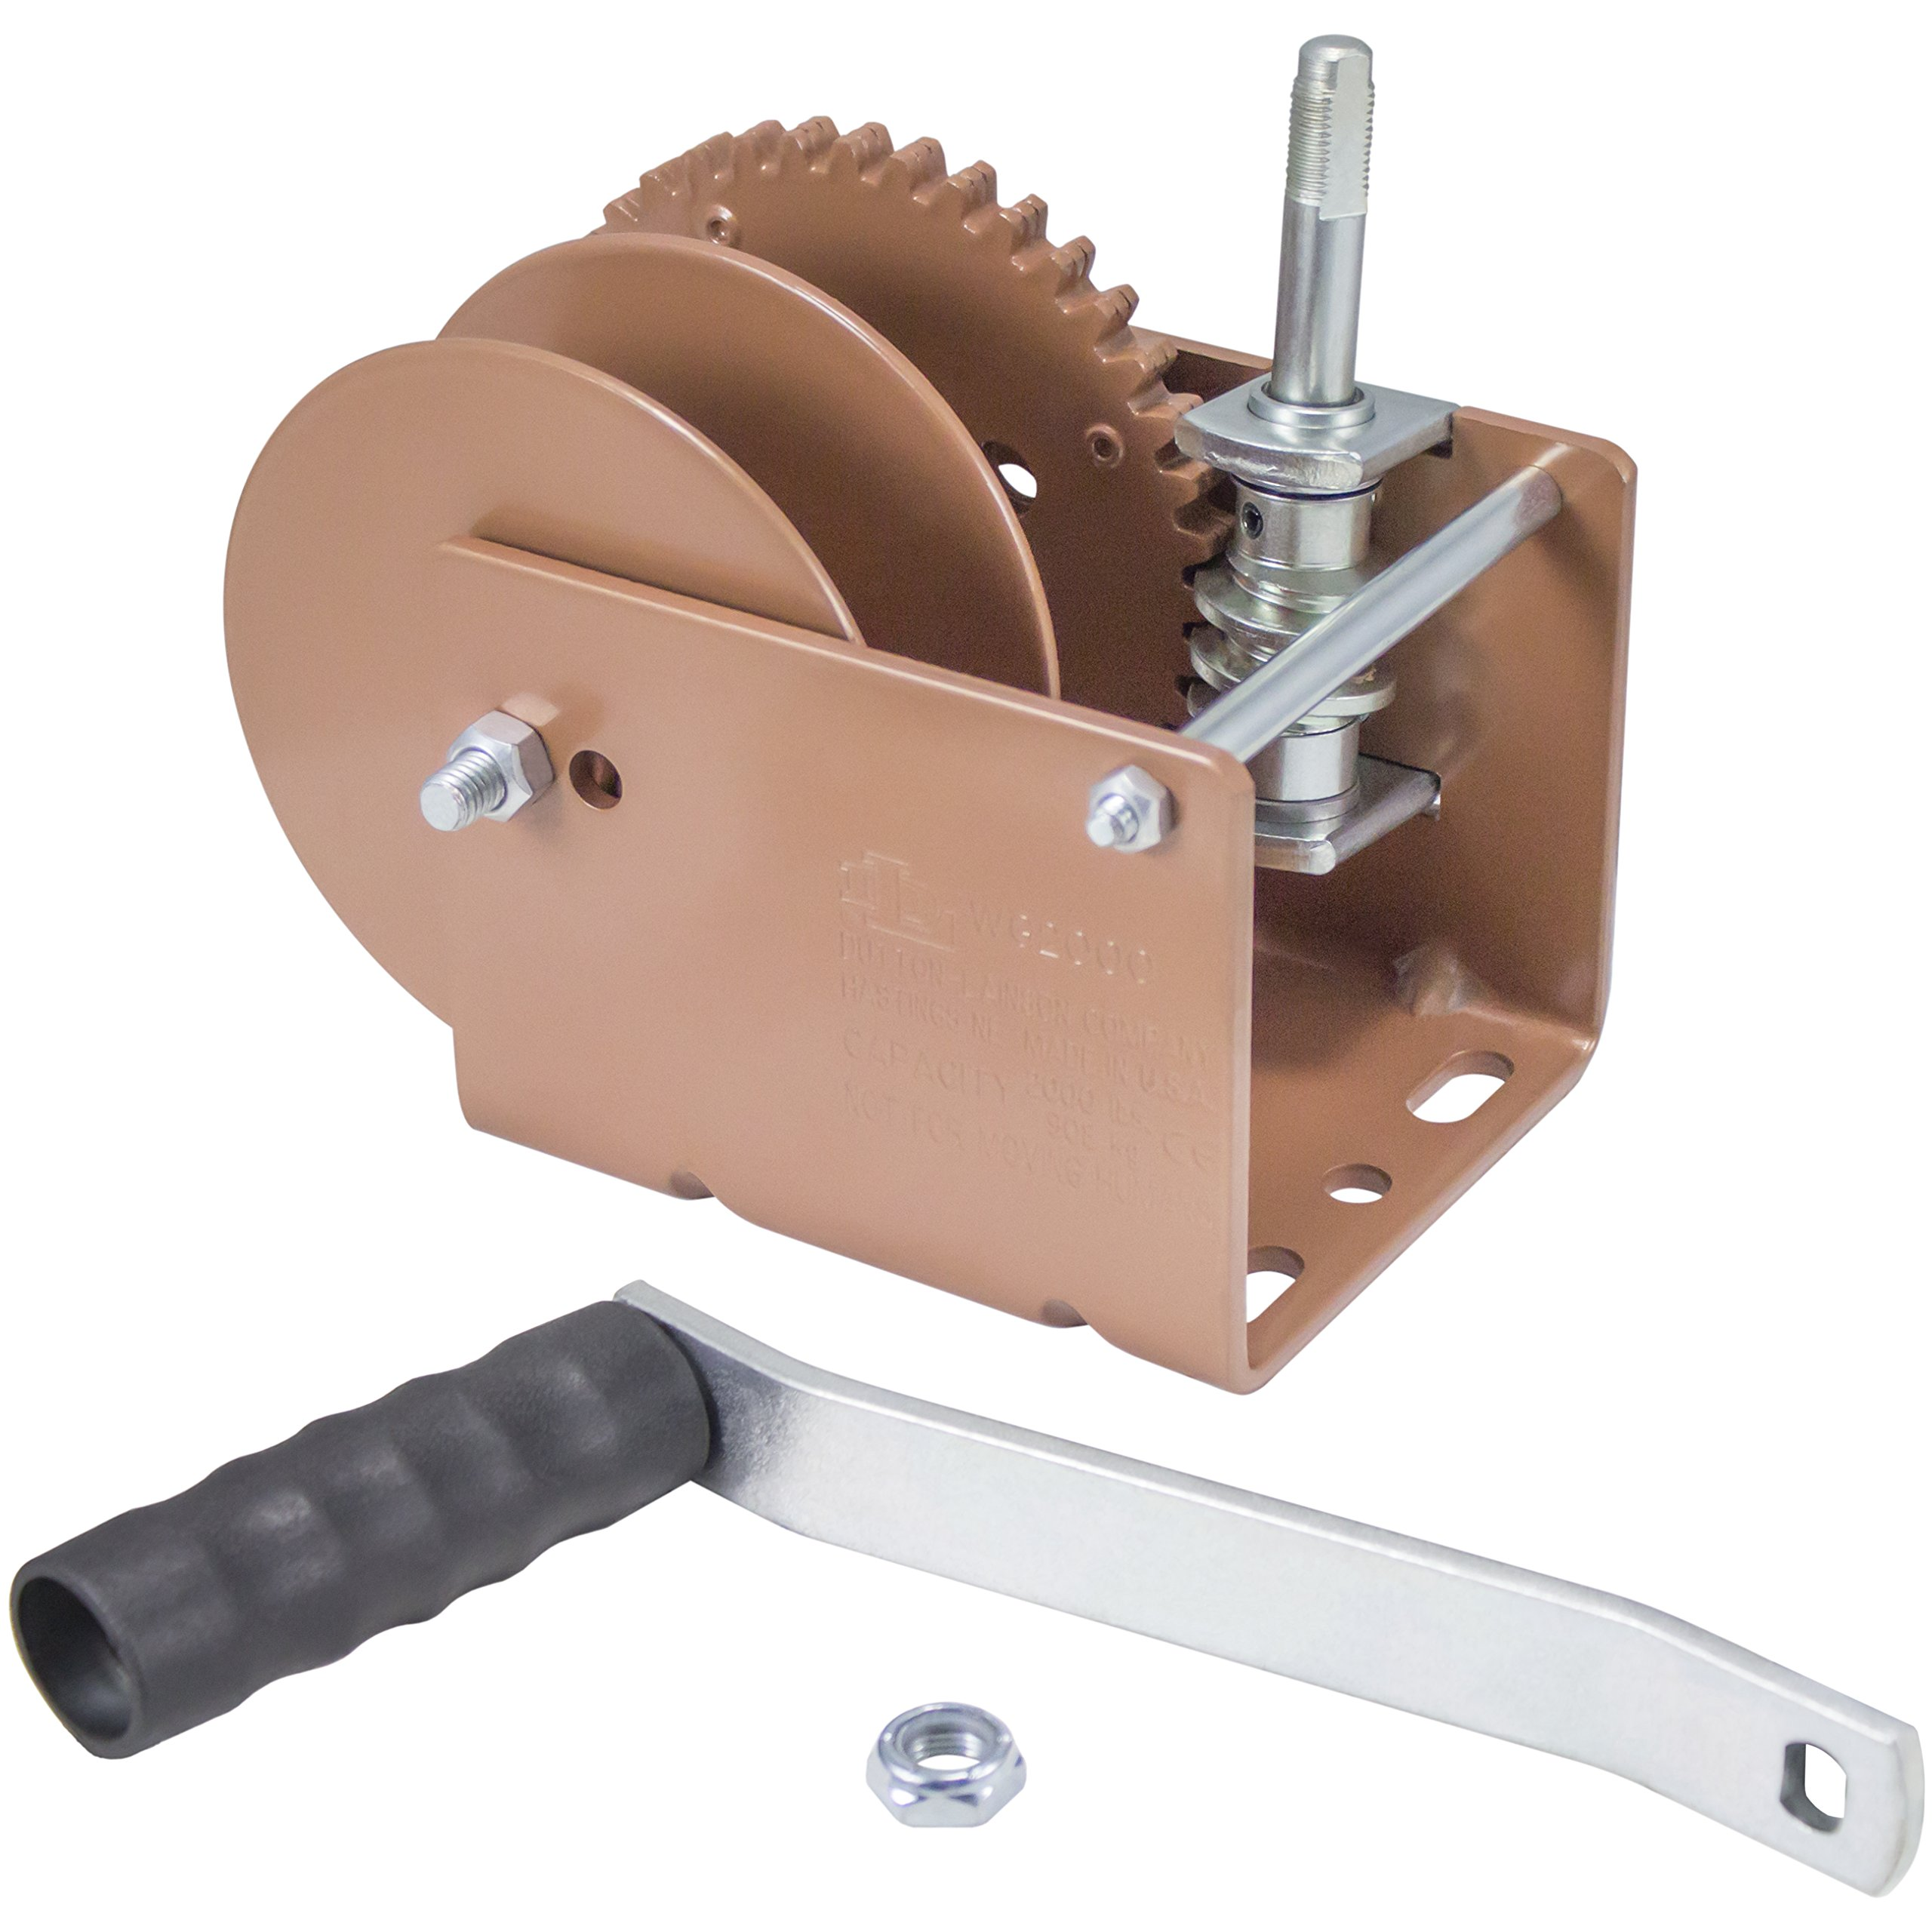 Dutton-Lainson Company (WG1500SR) Worm Gear Winch with Split Reel - 1500 lb. Load Capacity